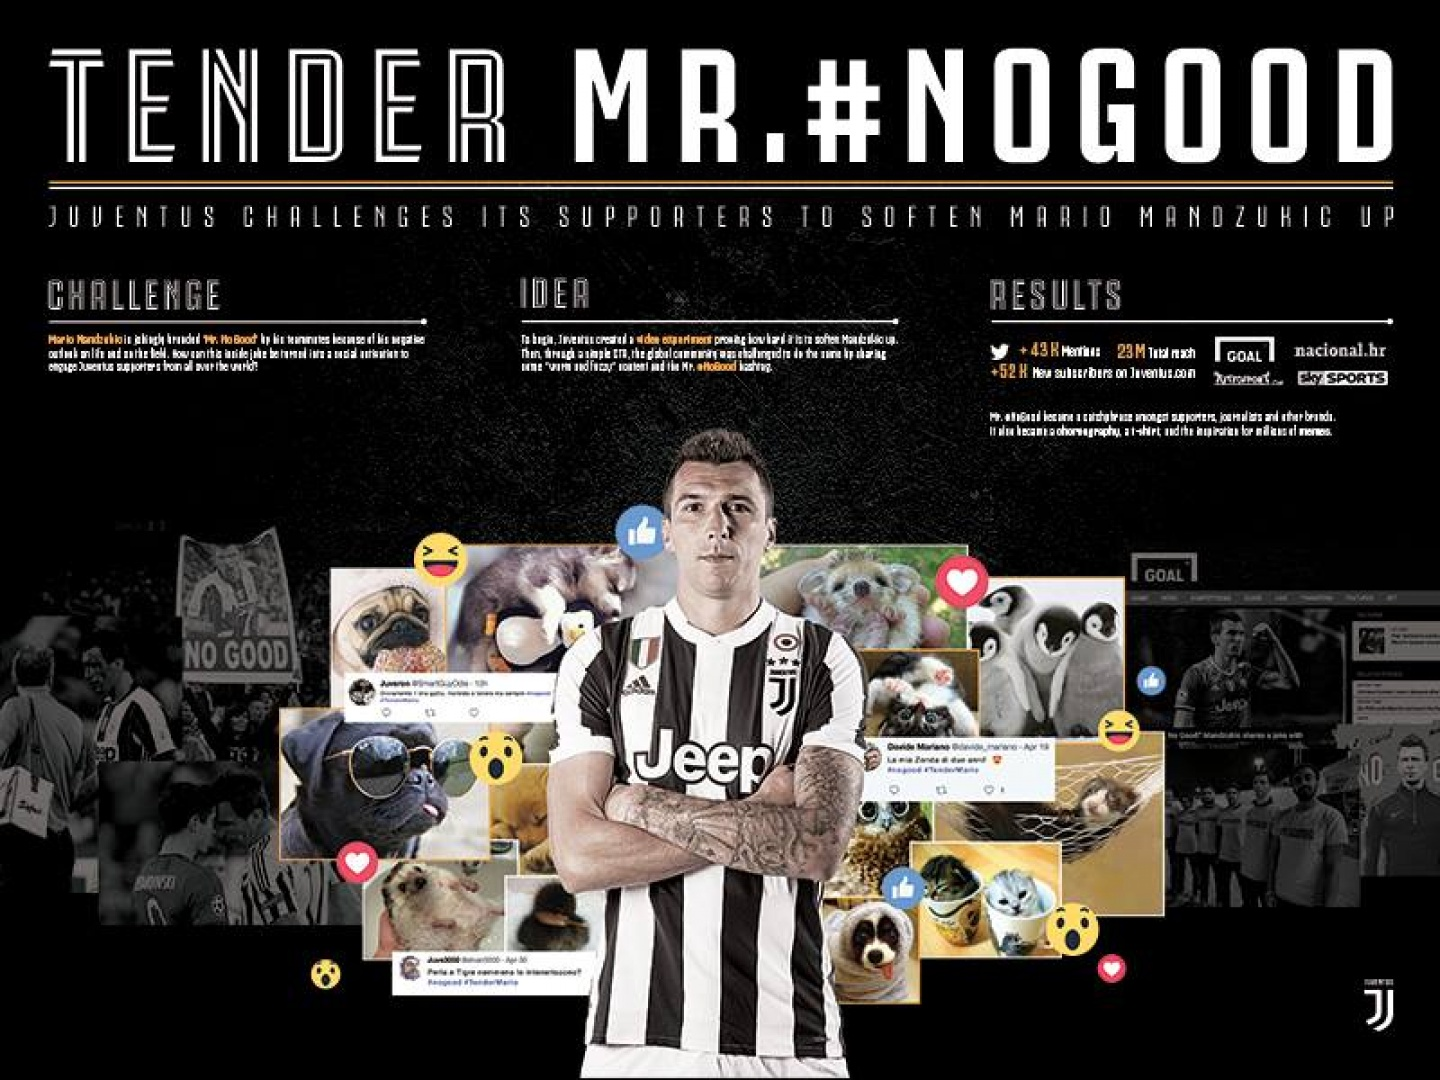 Tender Mr. #NOGOOD Thumbnail